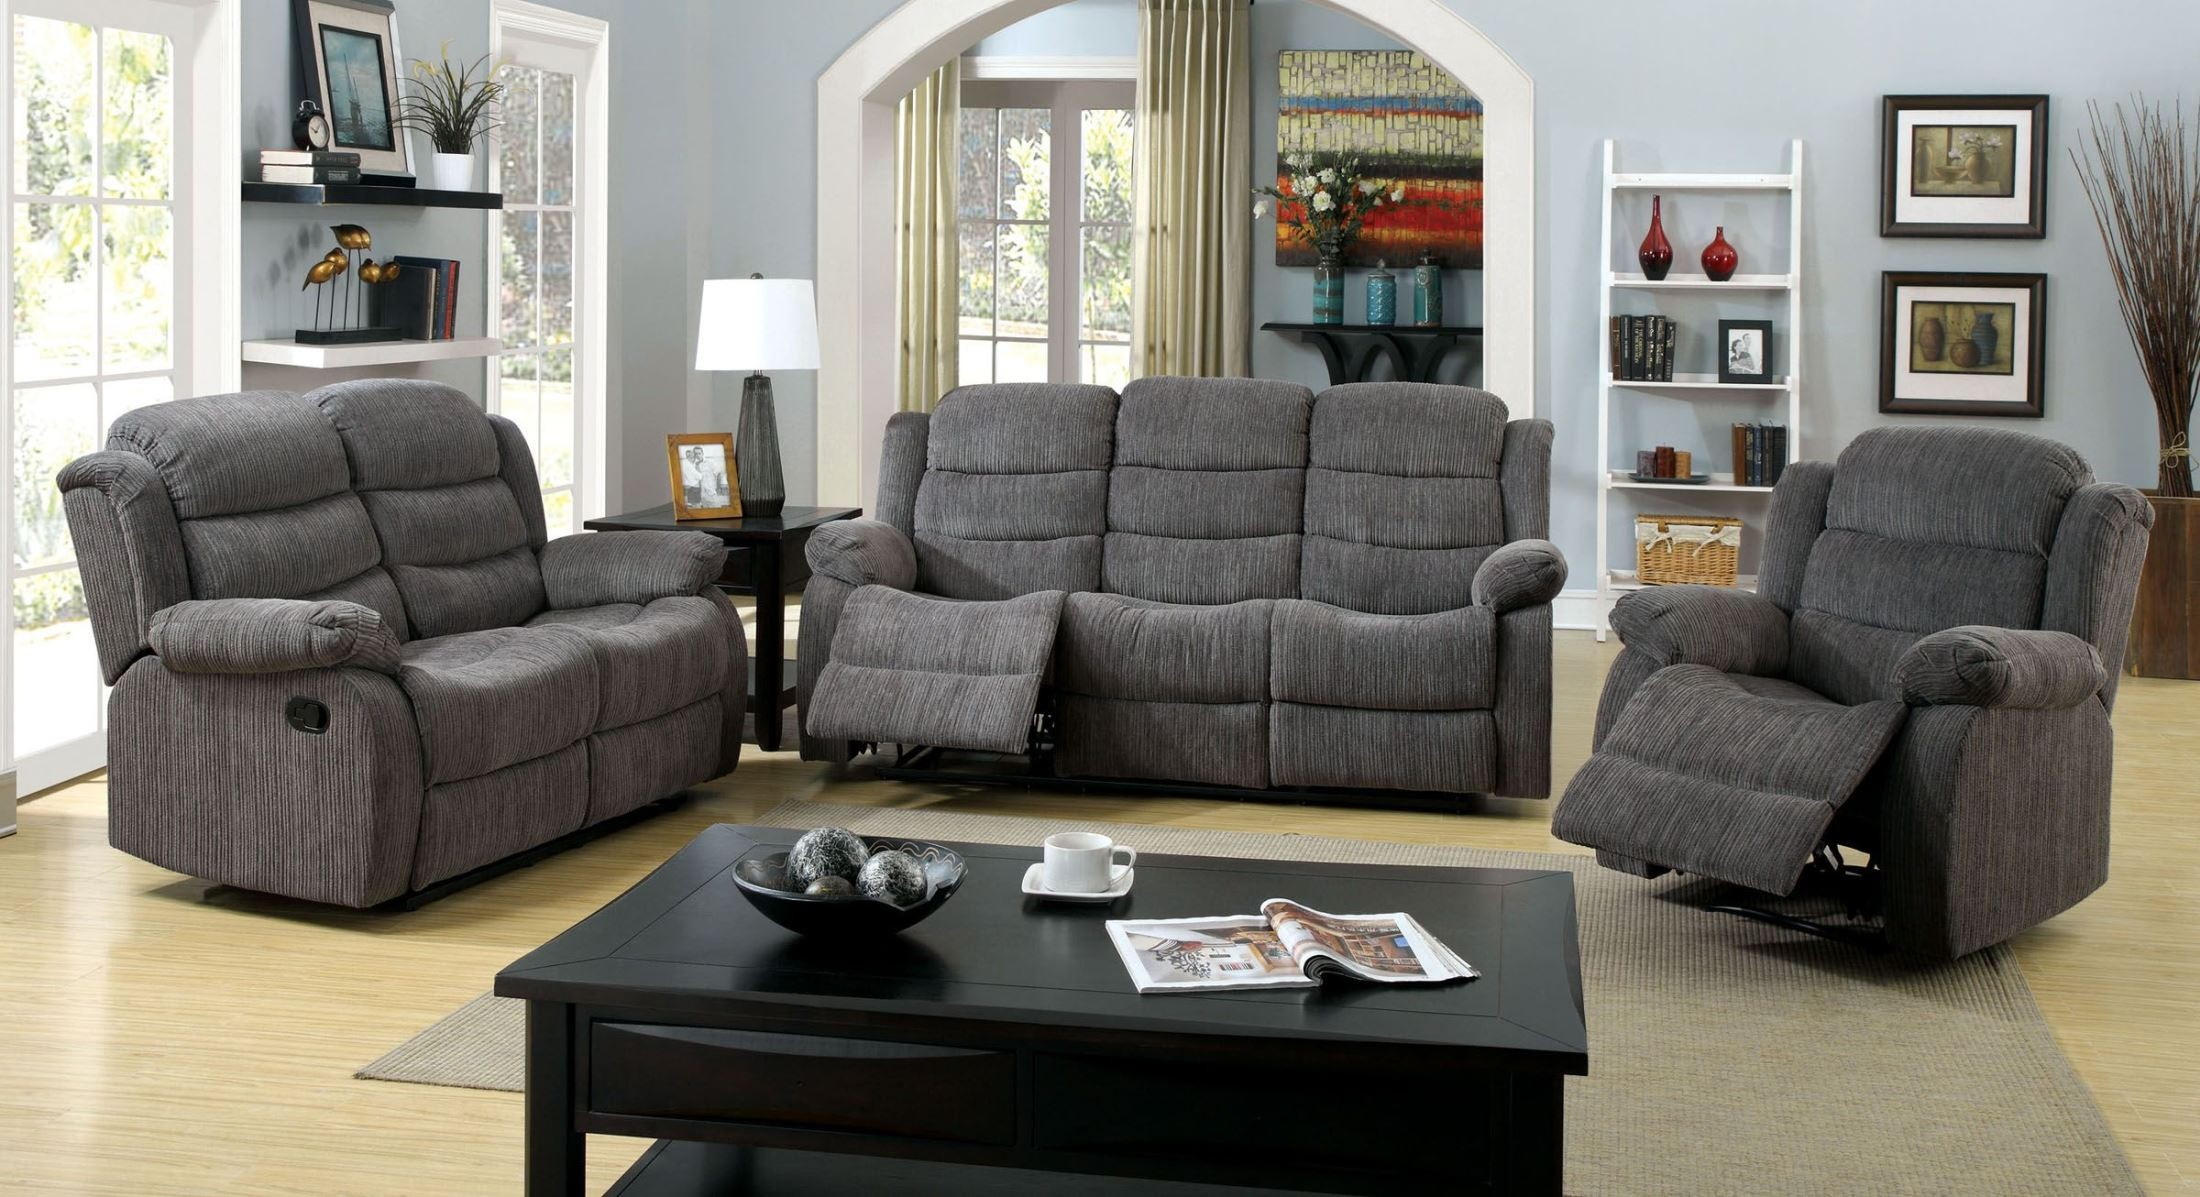 millville gray chenille reclining living room set from